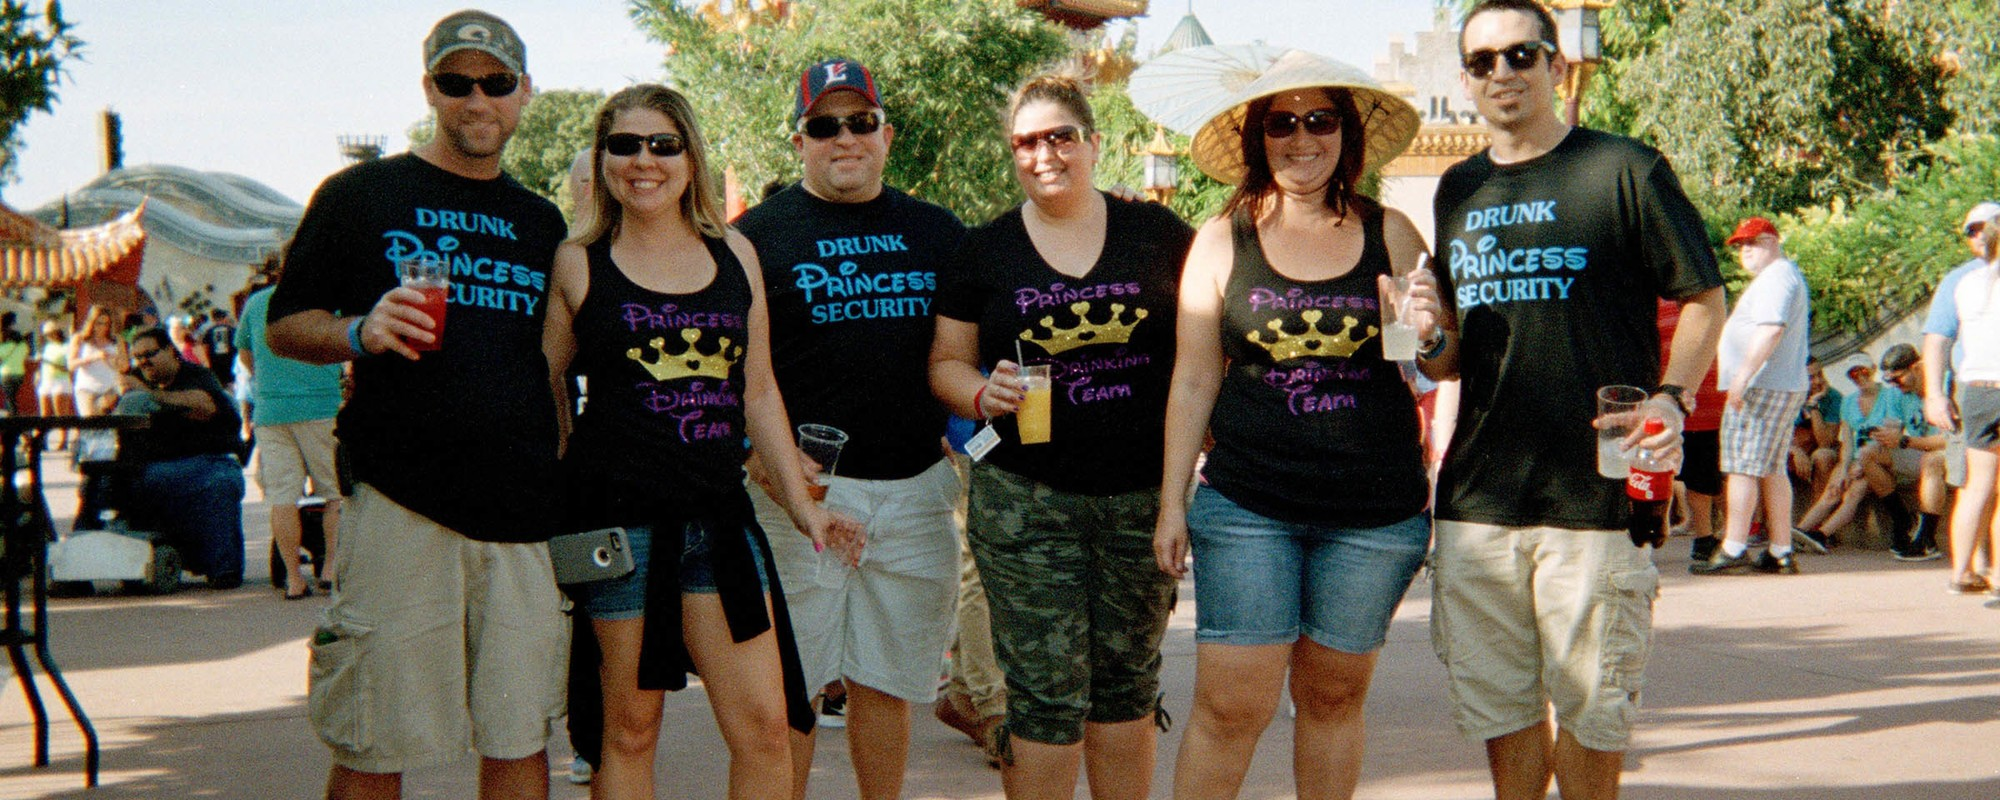 Photos of People Getting Happily Drunk in Disney World